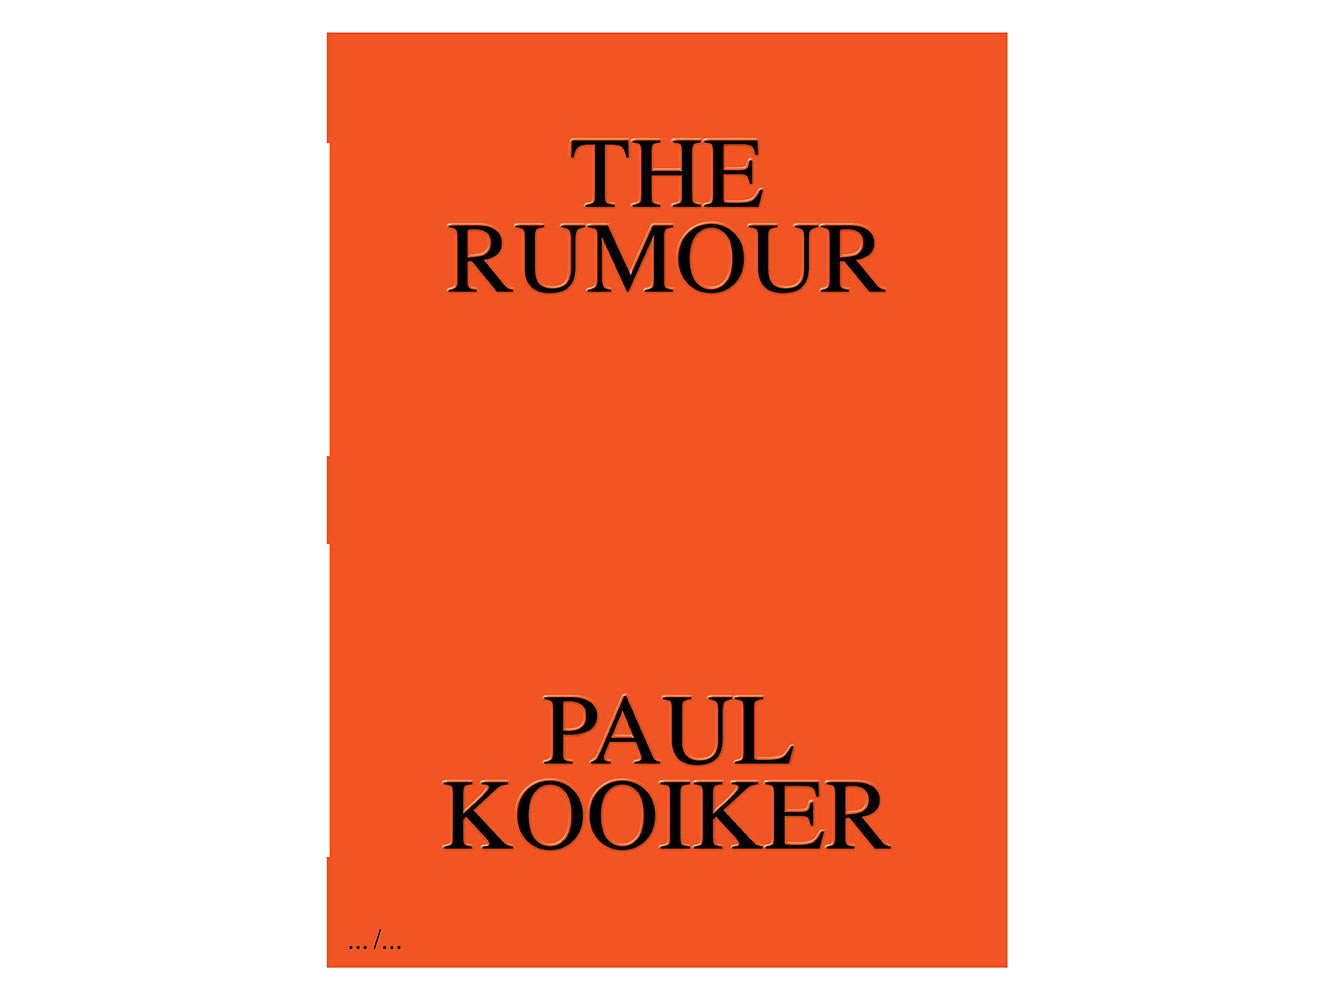 The Rumour by Paul Kooiker (Pre-Order)